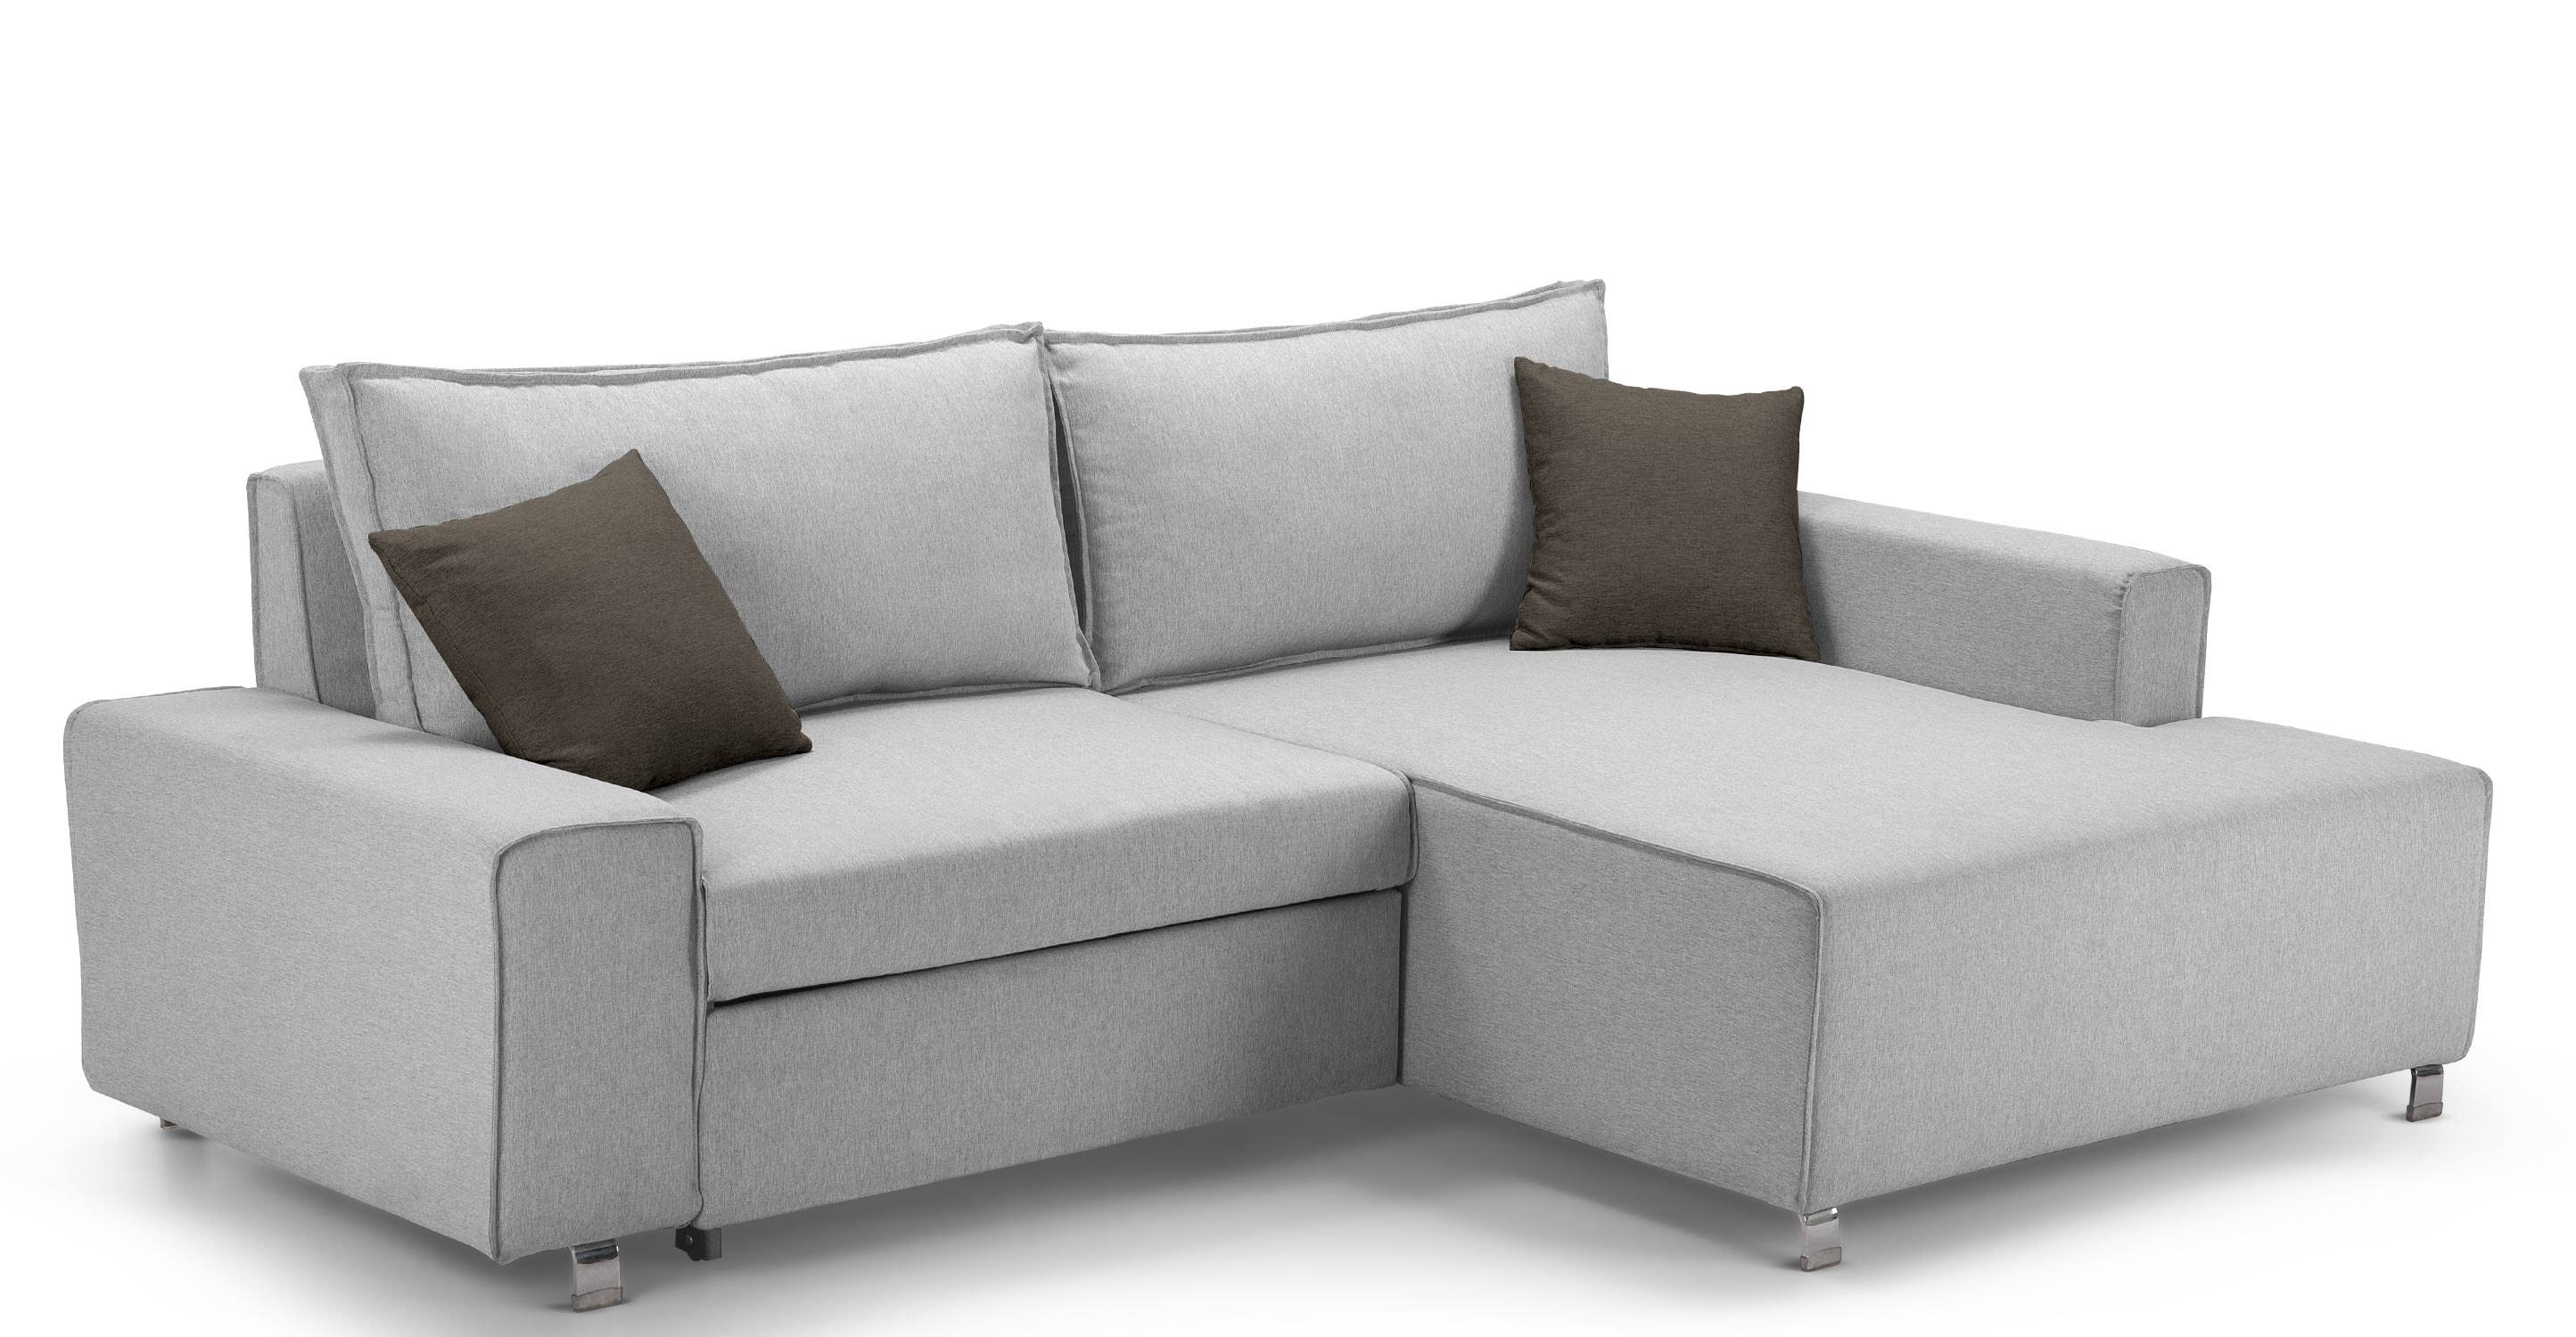 Mayne Right Hand Facing Corner Sofa Bed, Clear Grey Stone | Made Throughout Corner Sofa Beds (View 12 of 15)